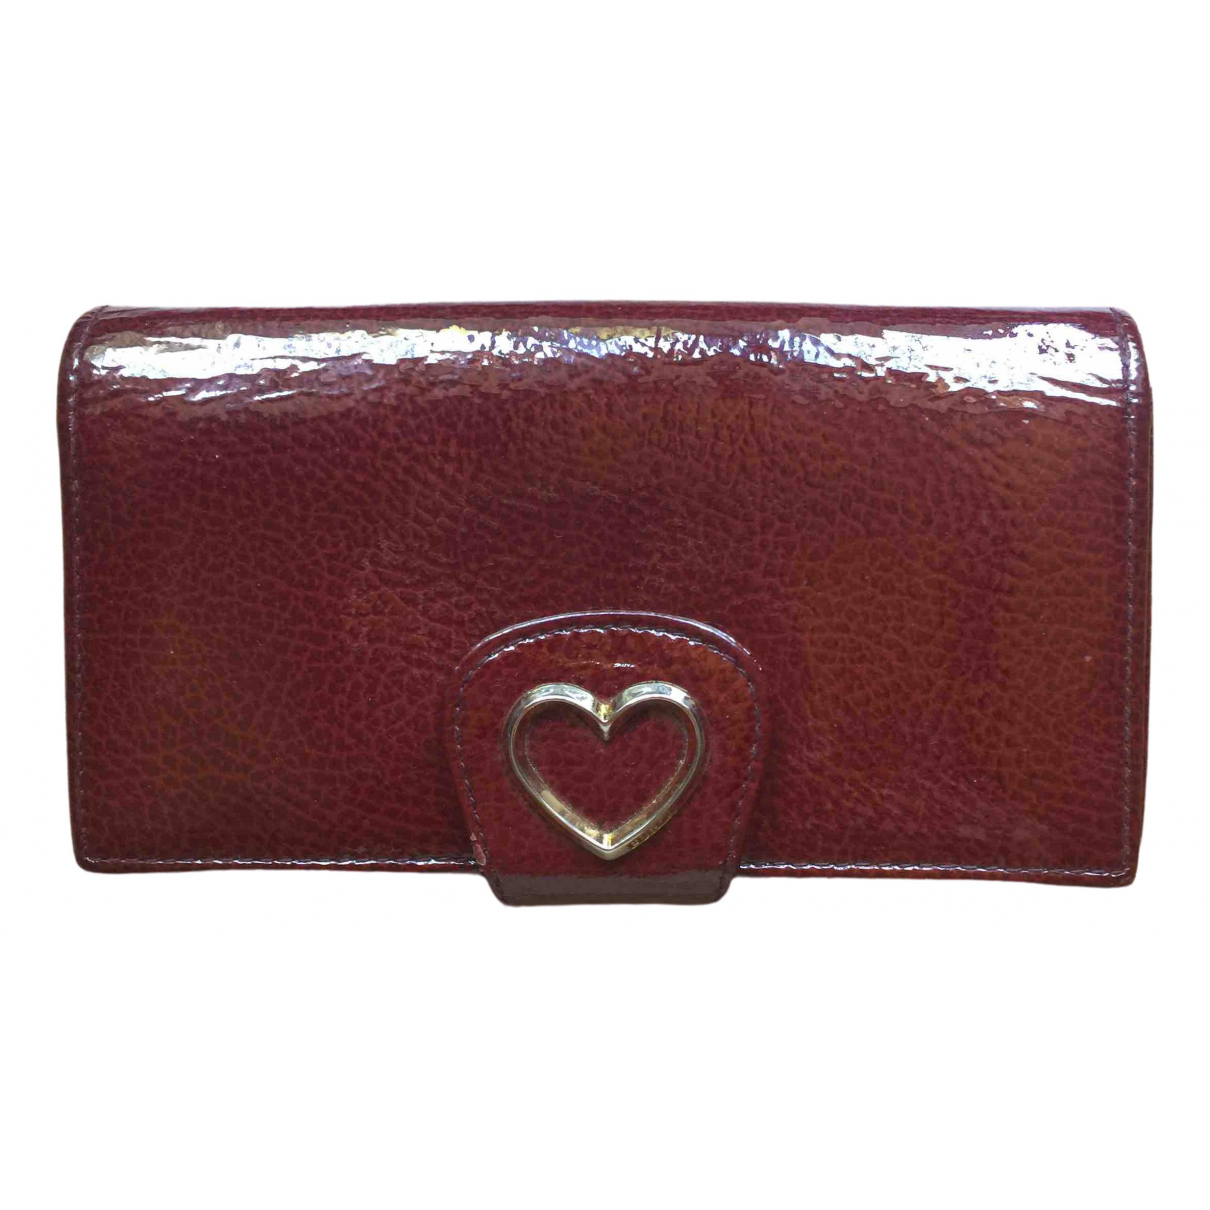 Furla \N Burgundy Patent leather wallet for Women \N